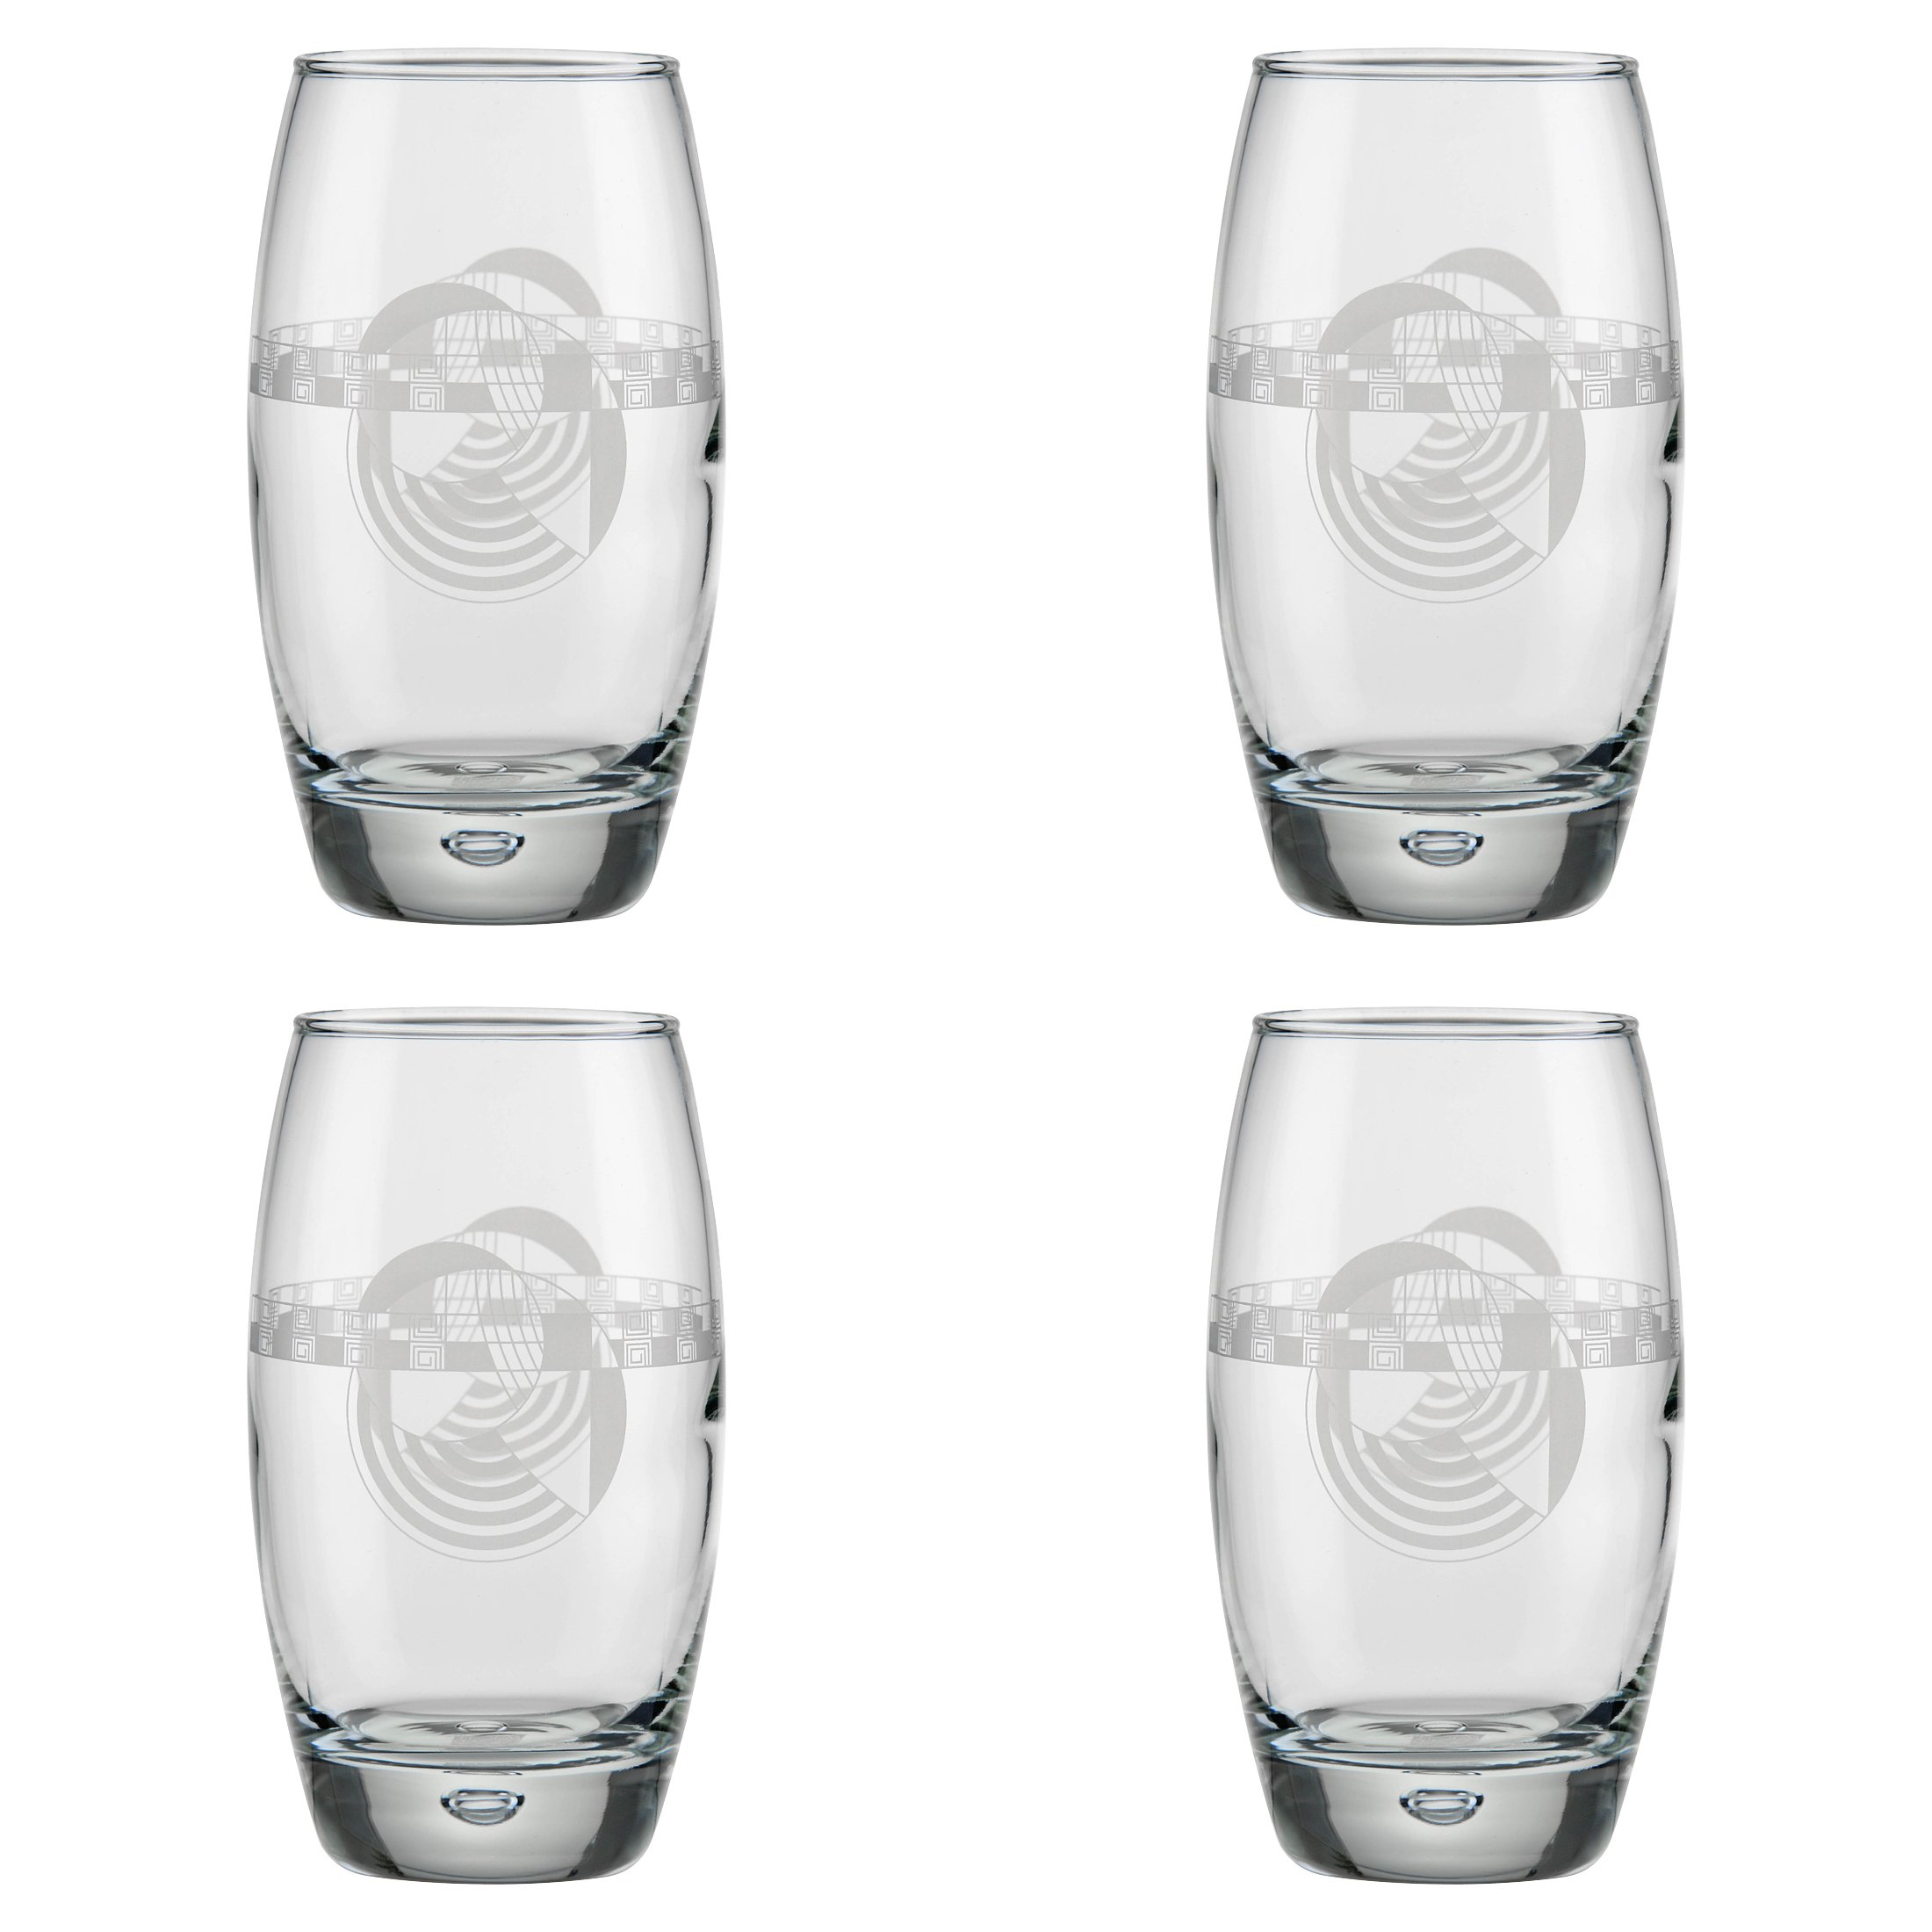 14.7 Ounce Set of 4 Limited Edition High Class Glassware Drinkware Barware Glass Highball Coolers//cups Circleware Ambition Glass Drinking Glasses Set